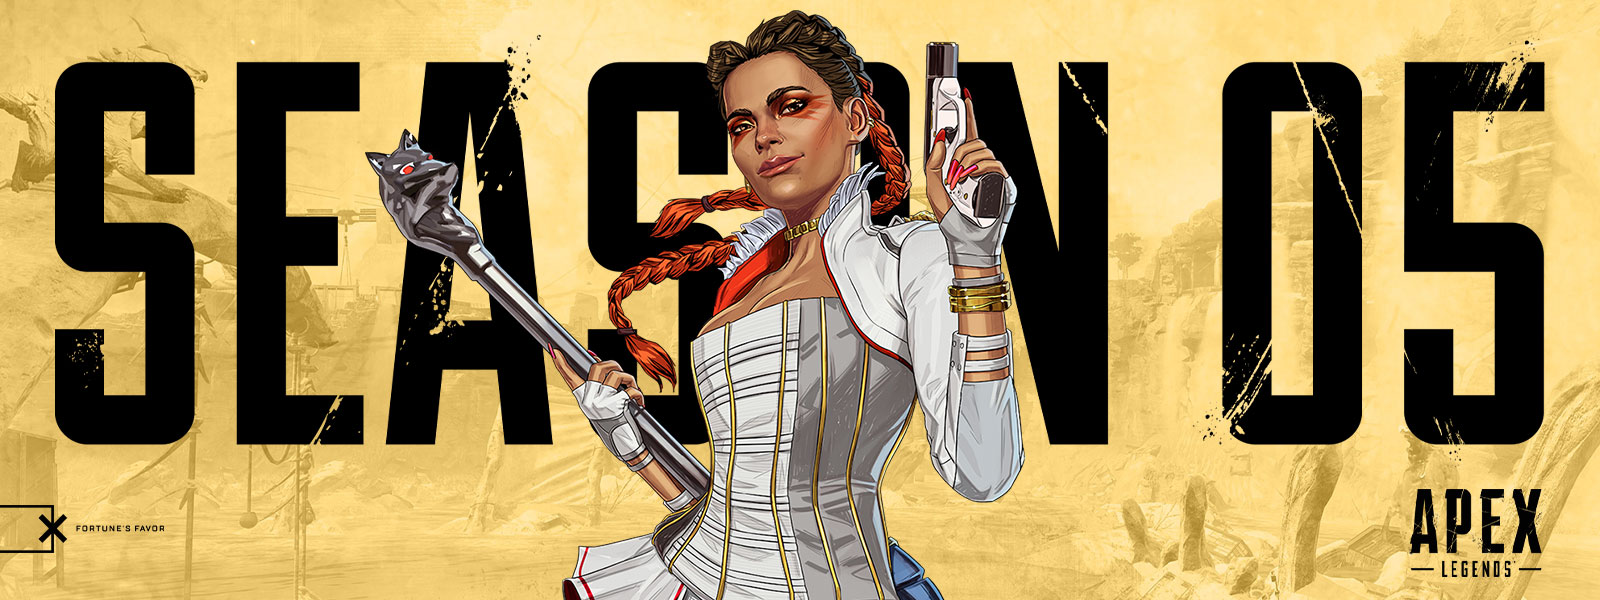 Apex Legends, Season 5, New hero Loba smiles with her gun and wolf staff.